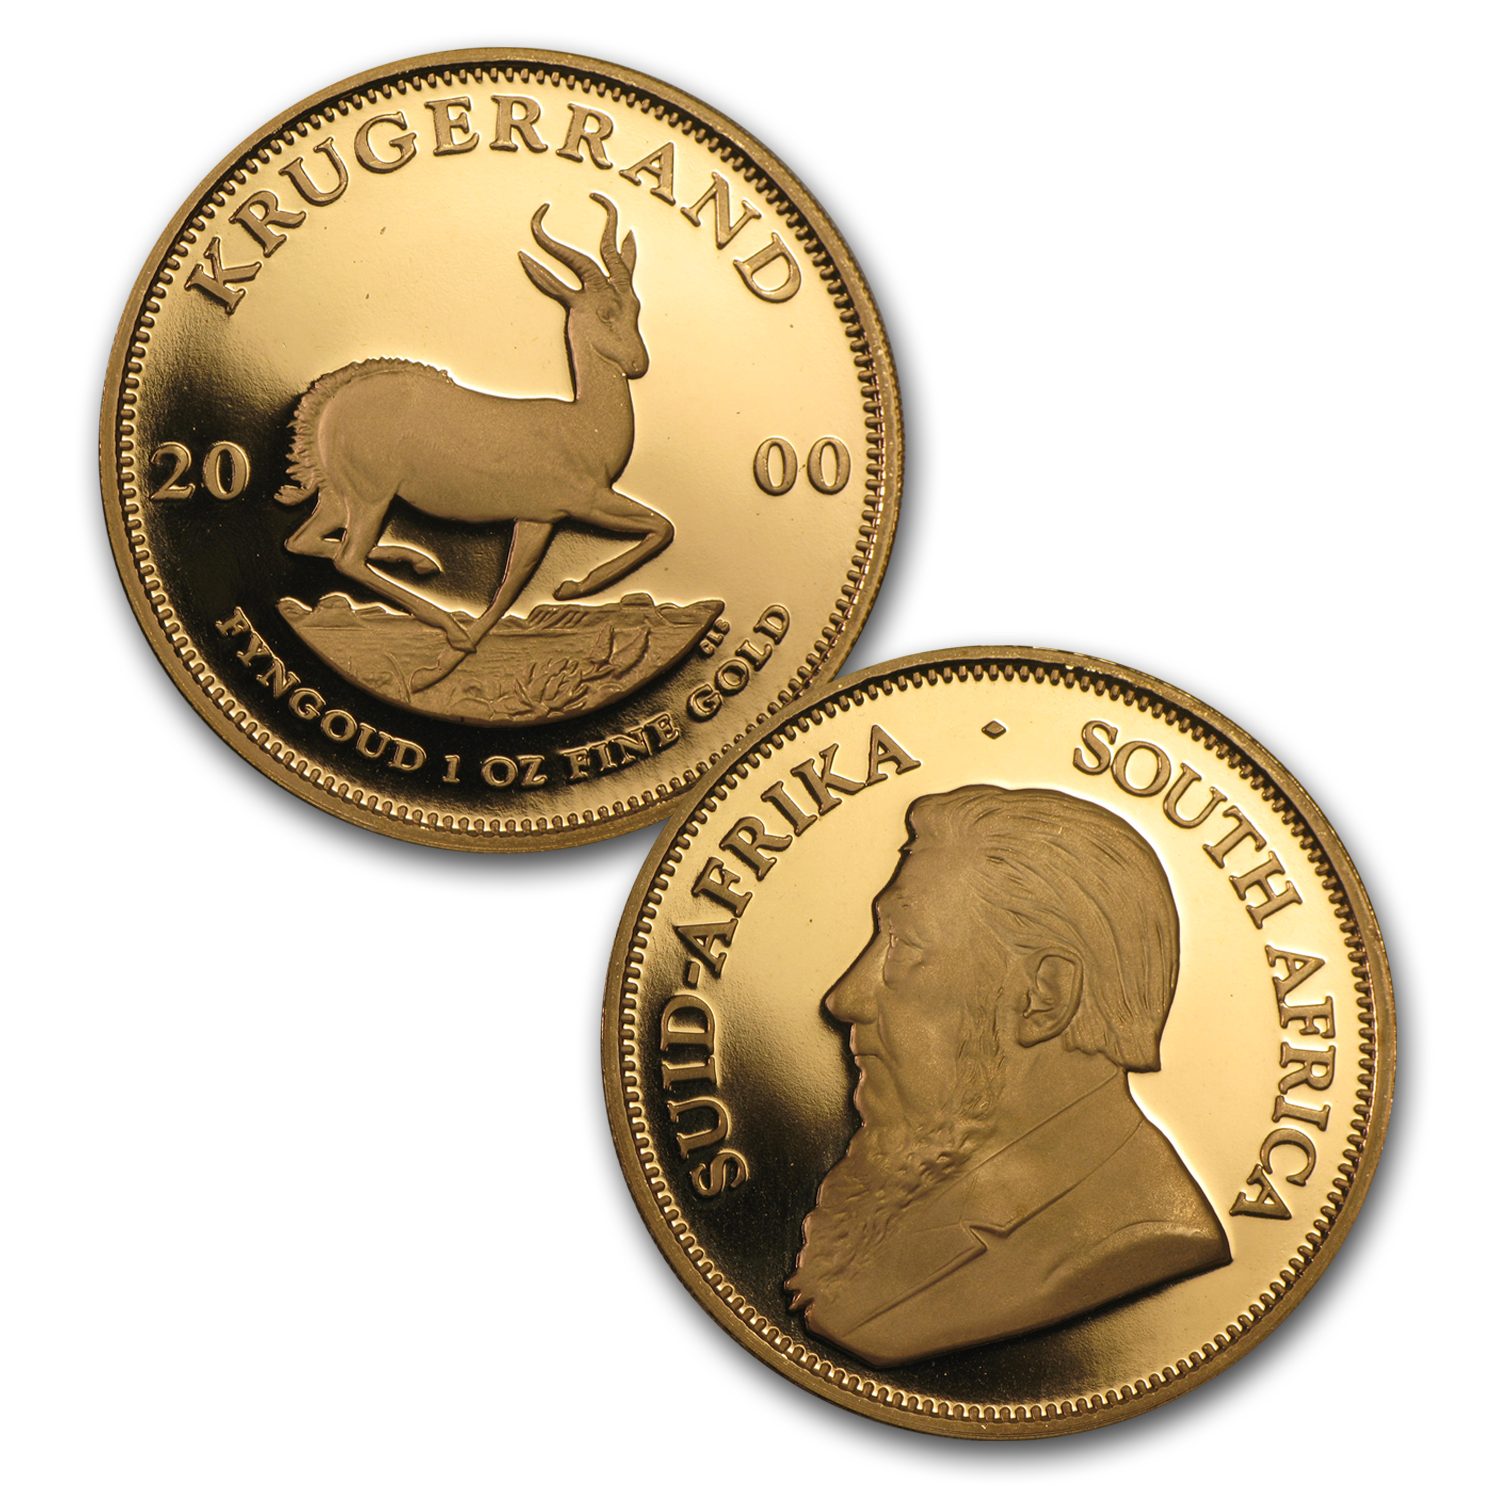 2000 South Africa 5-Coin Gold Krugerrand Proof Set